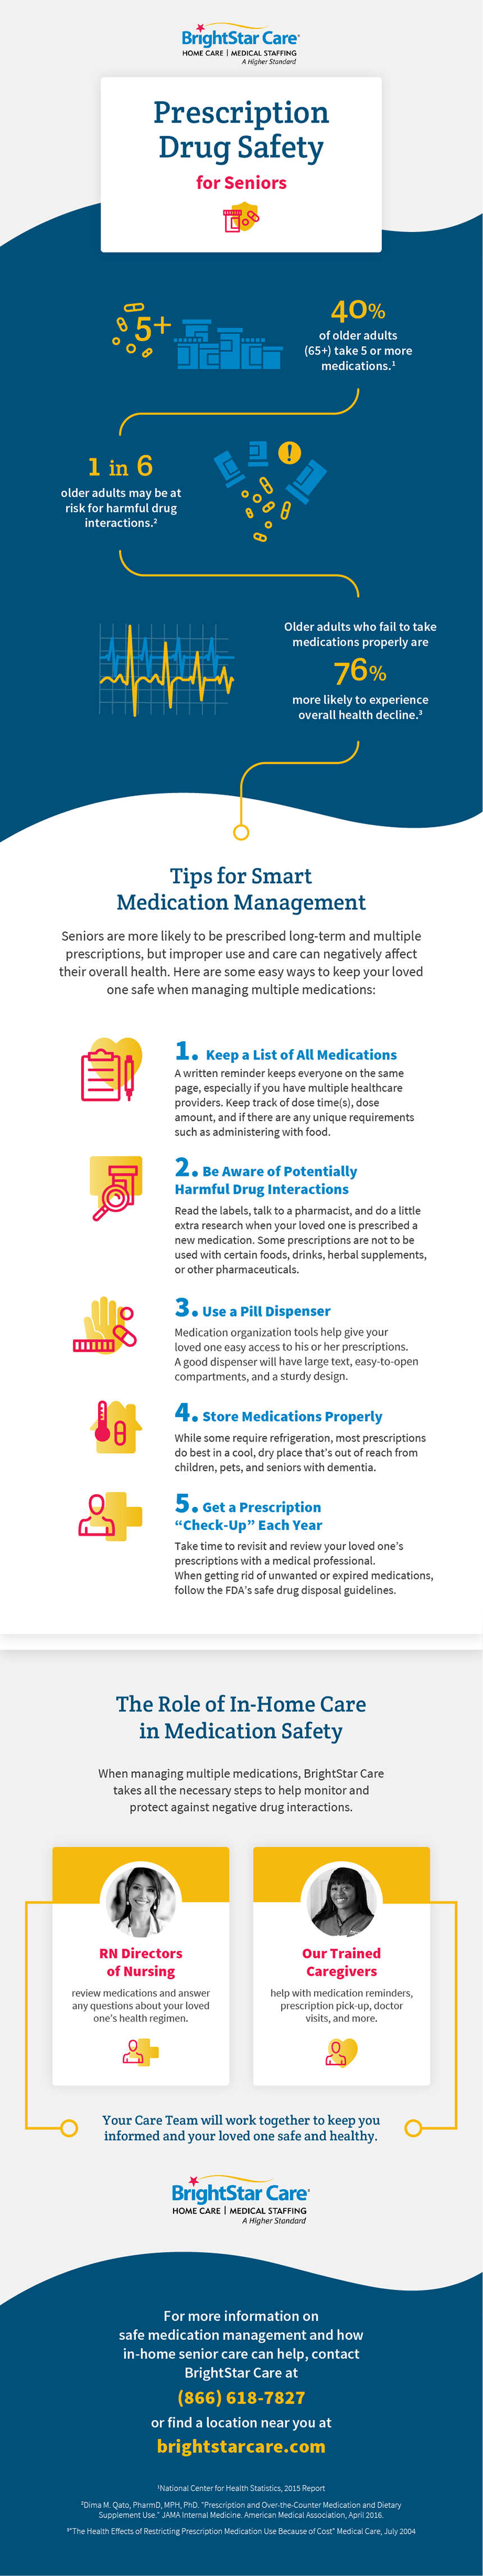 BrightStar Care Tips for Smart Medication Management and Avoiding Harmful Prescription Drug Interactions